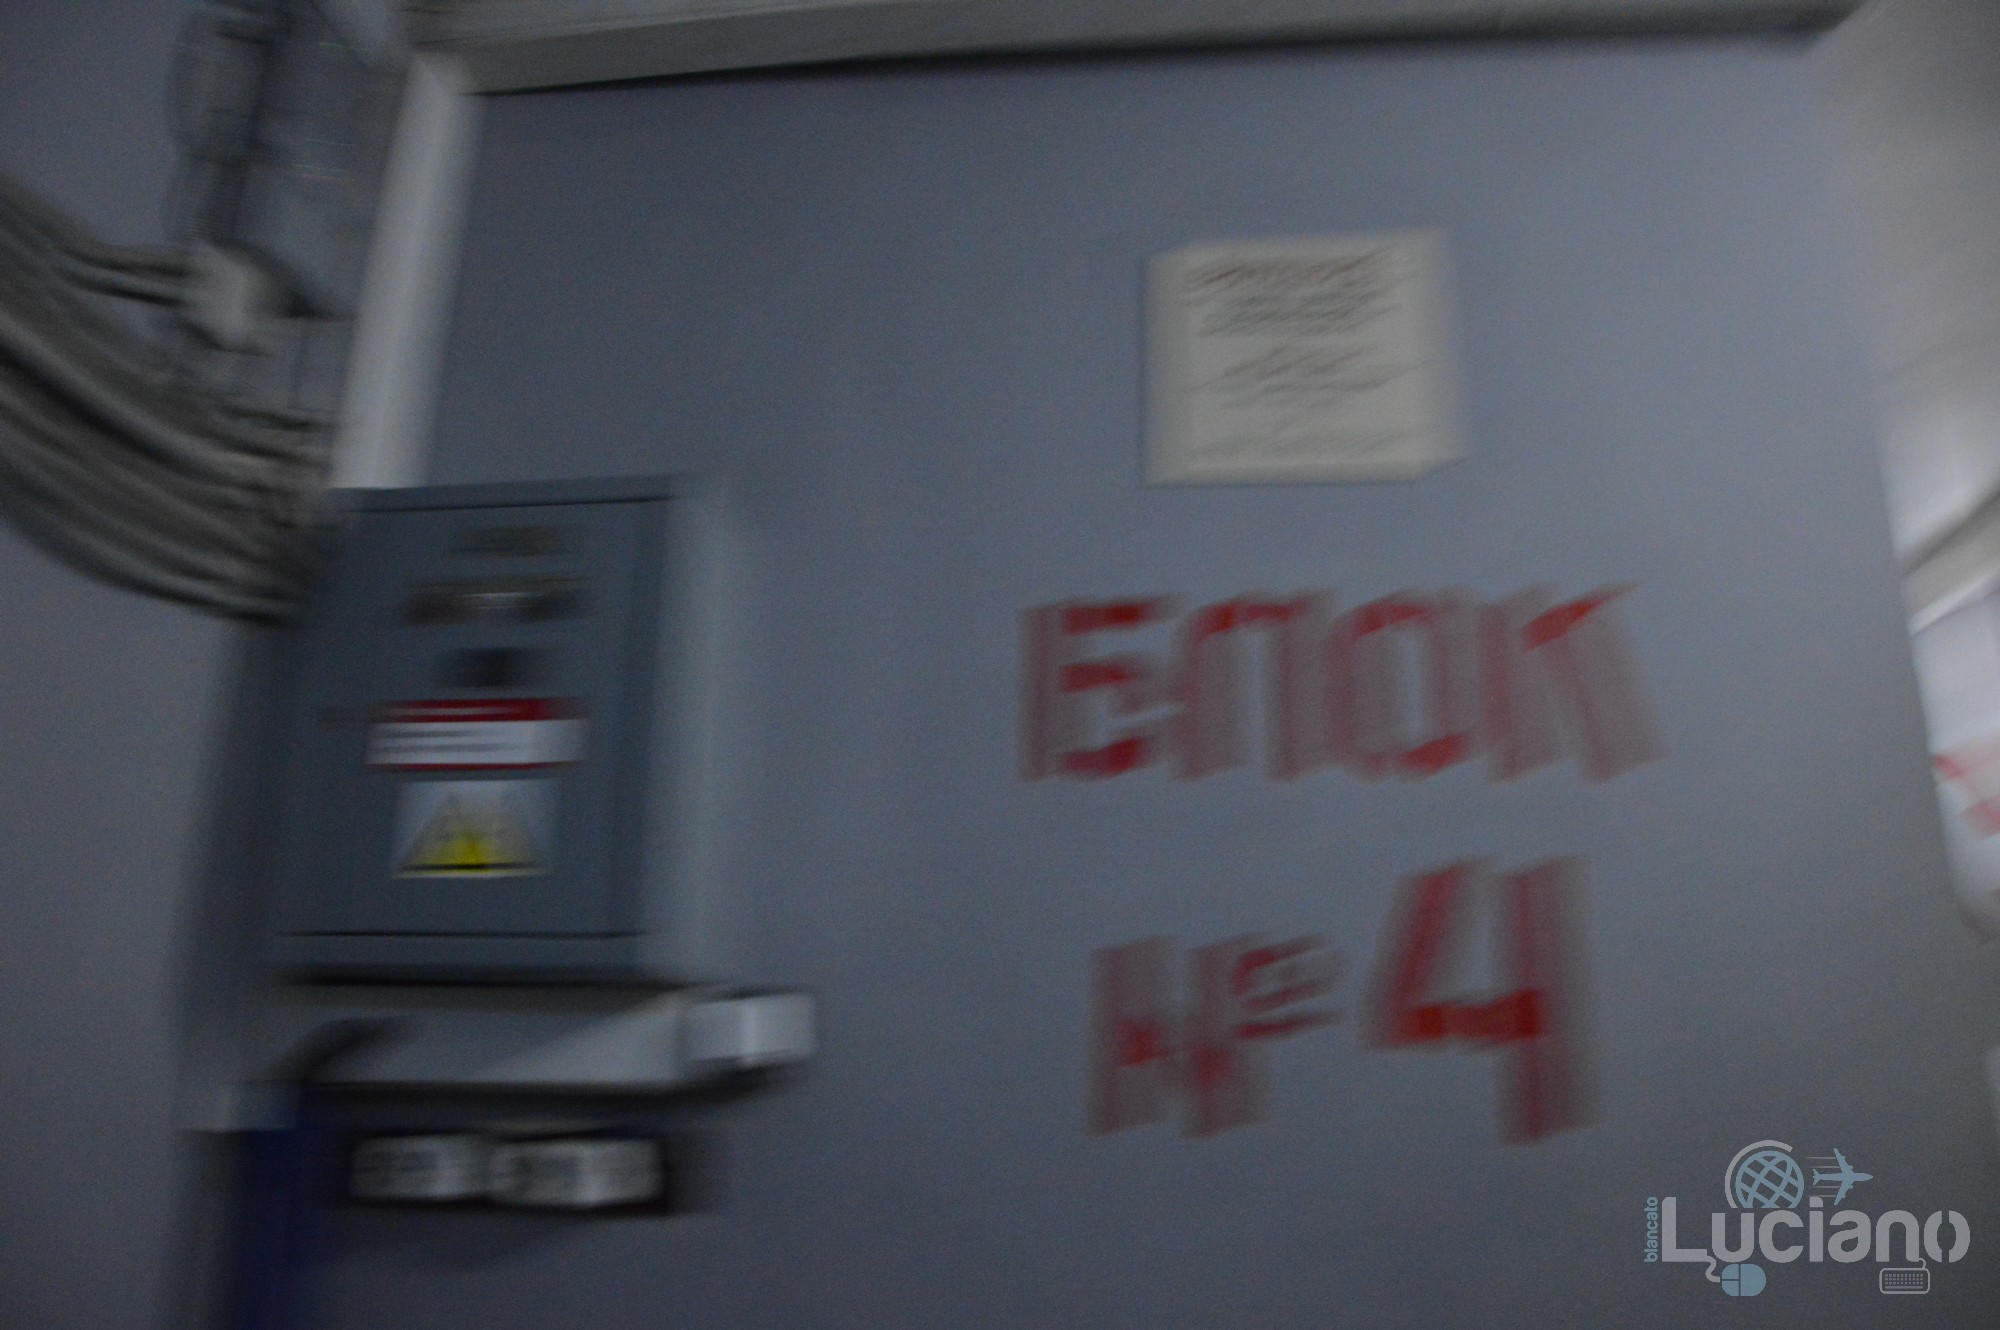 Bunker 42 - Mosca - Russia